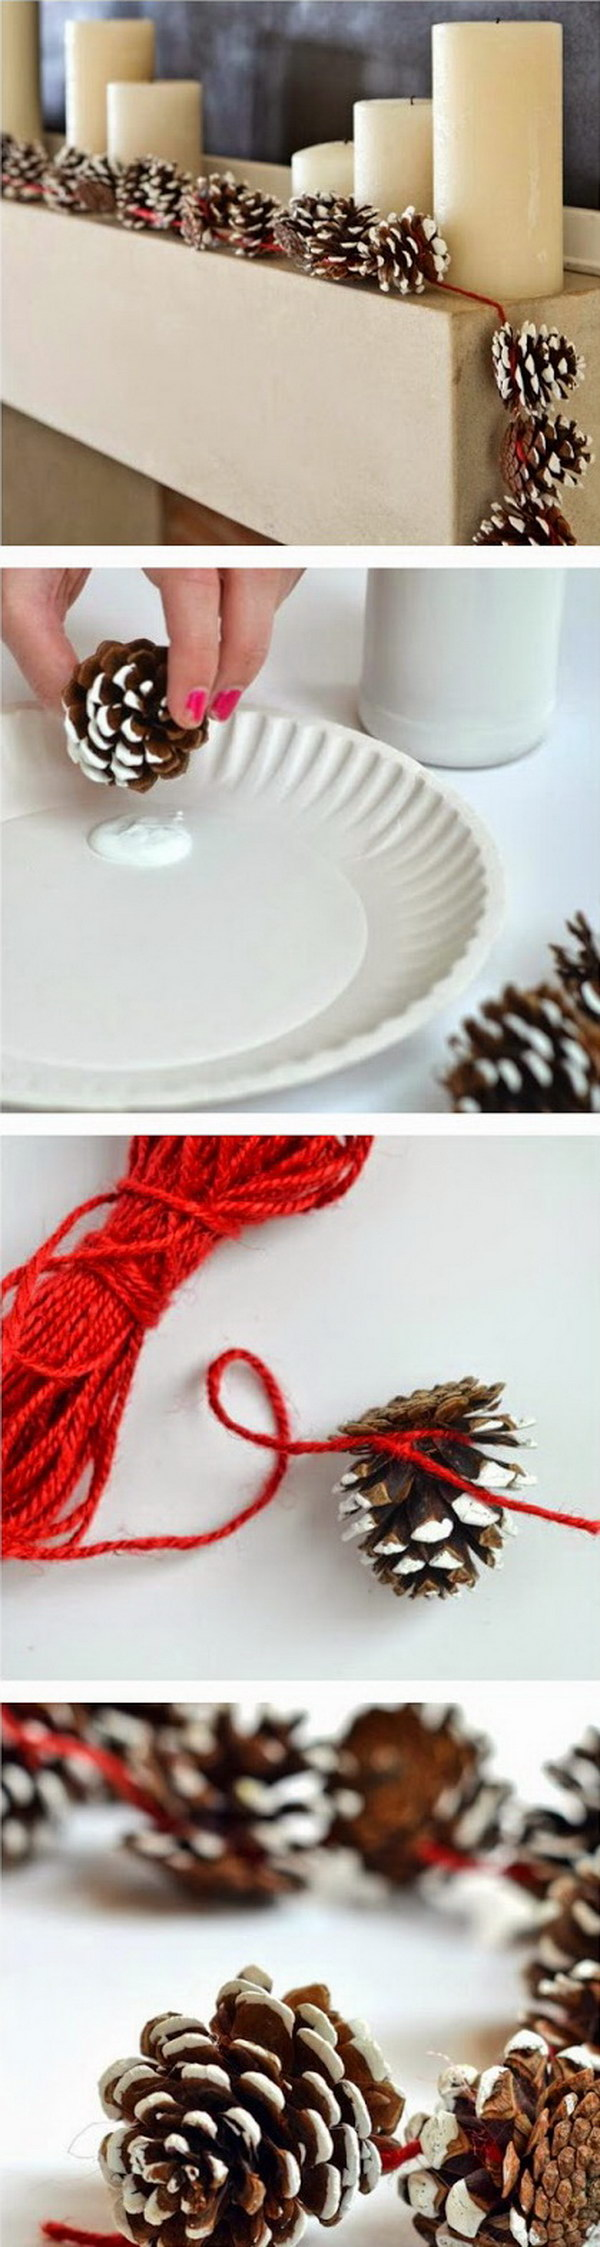 Pine Cone Garlands for Christmas Decoration. Love its rustic look for decoration at home. Super easy crafts that can get your kids involved in.